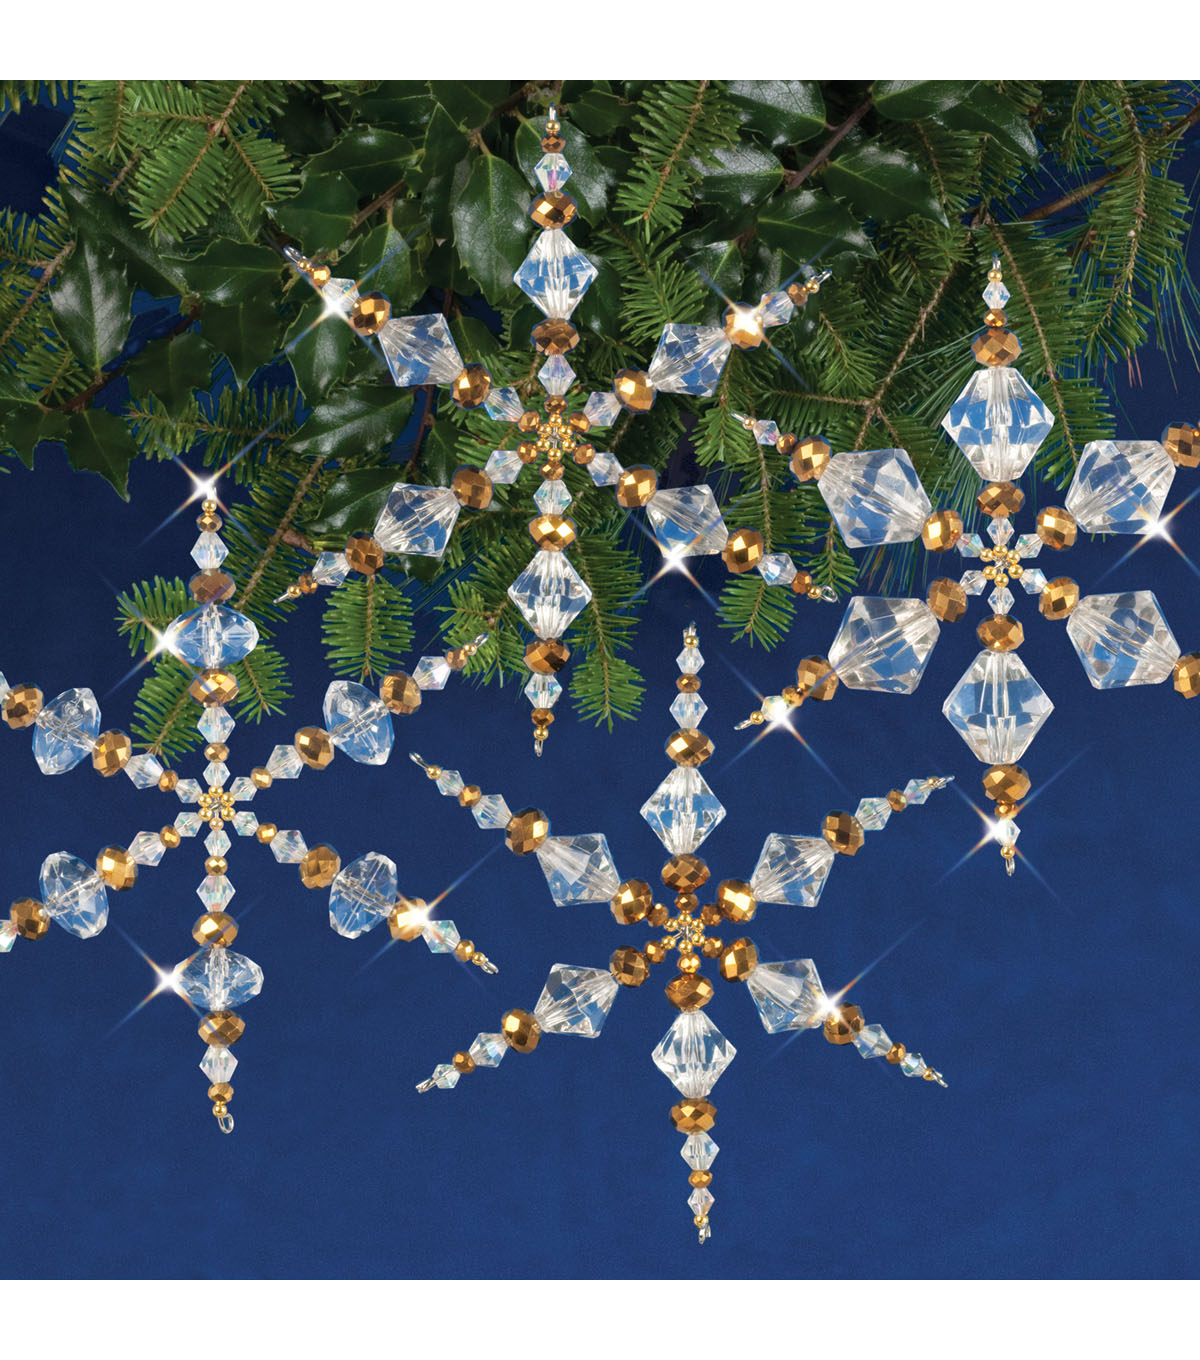 Solid Oak Nostalgic Christmas Beaded Crystal Snowflake Ornament Kit-Gold